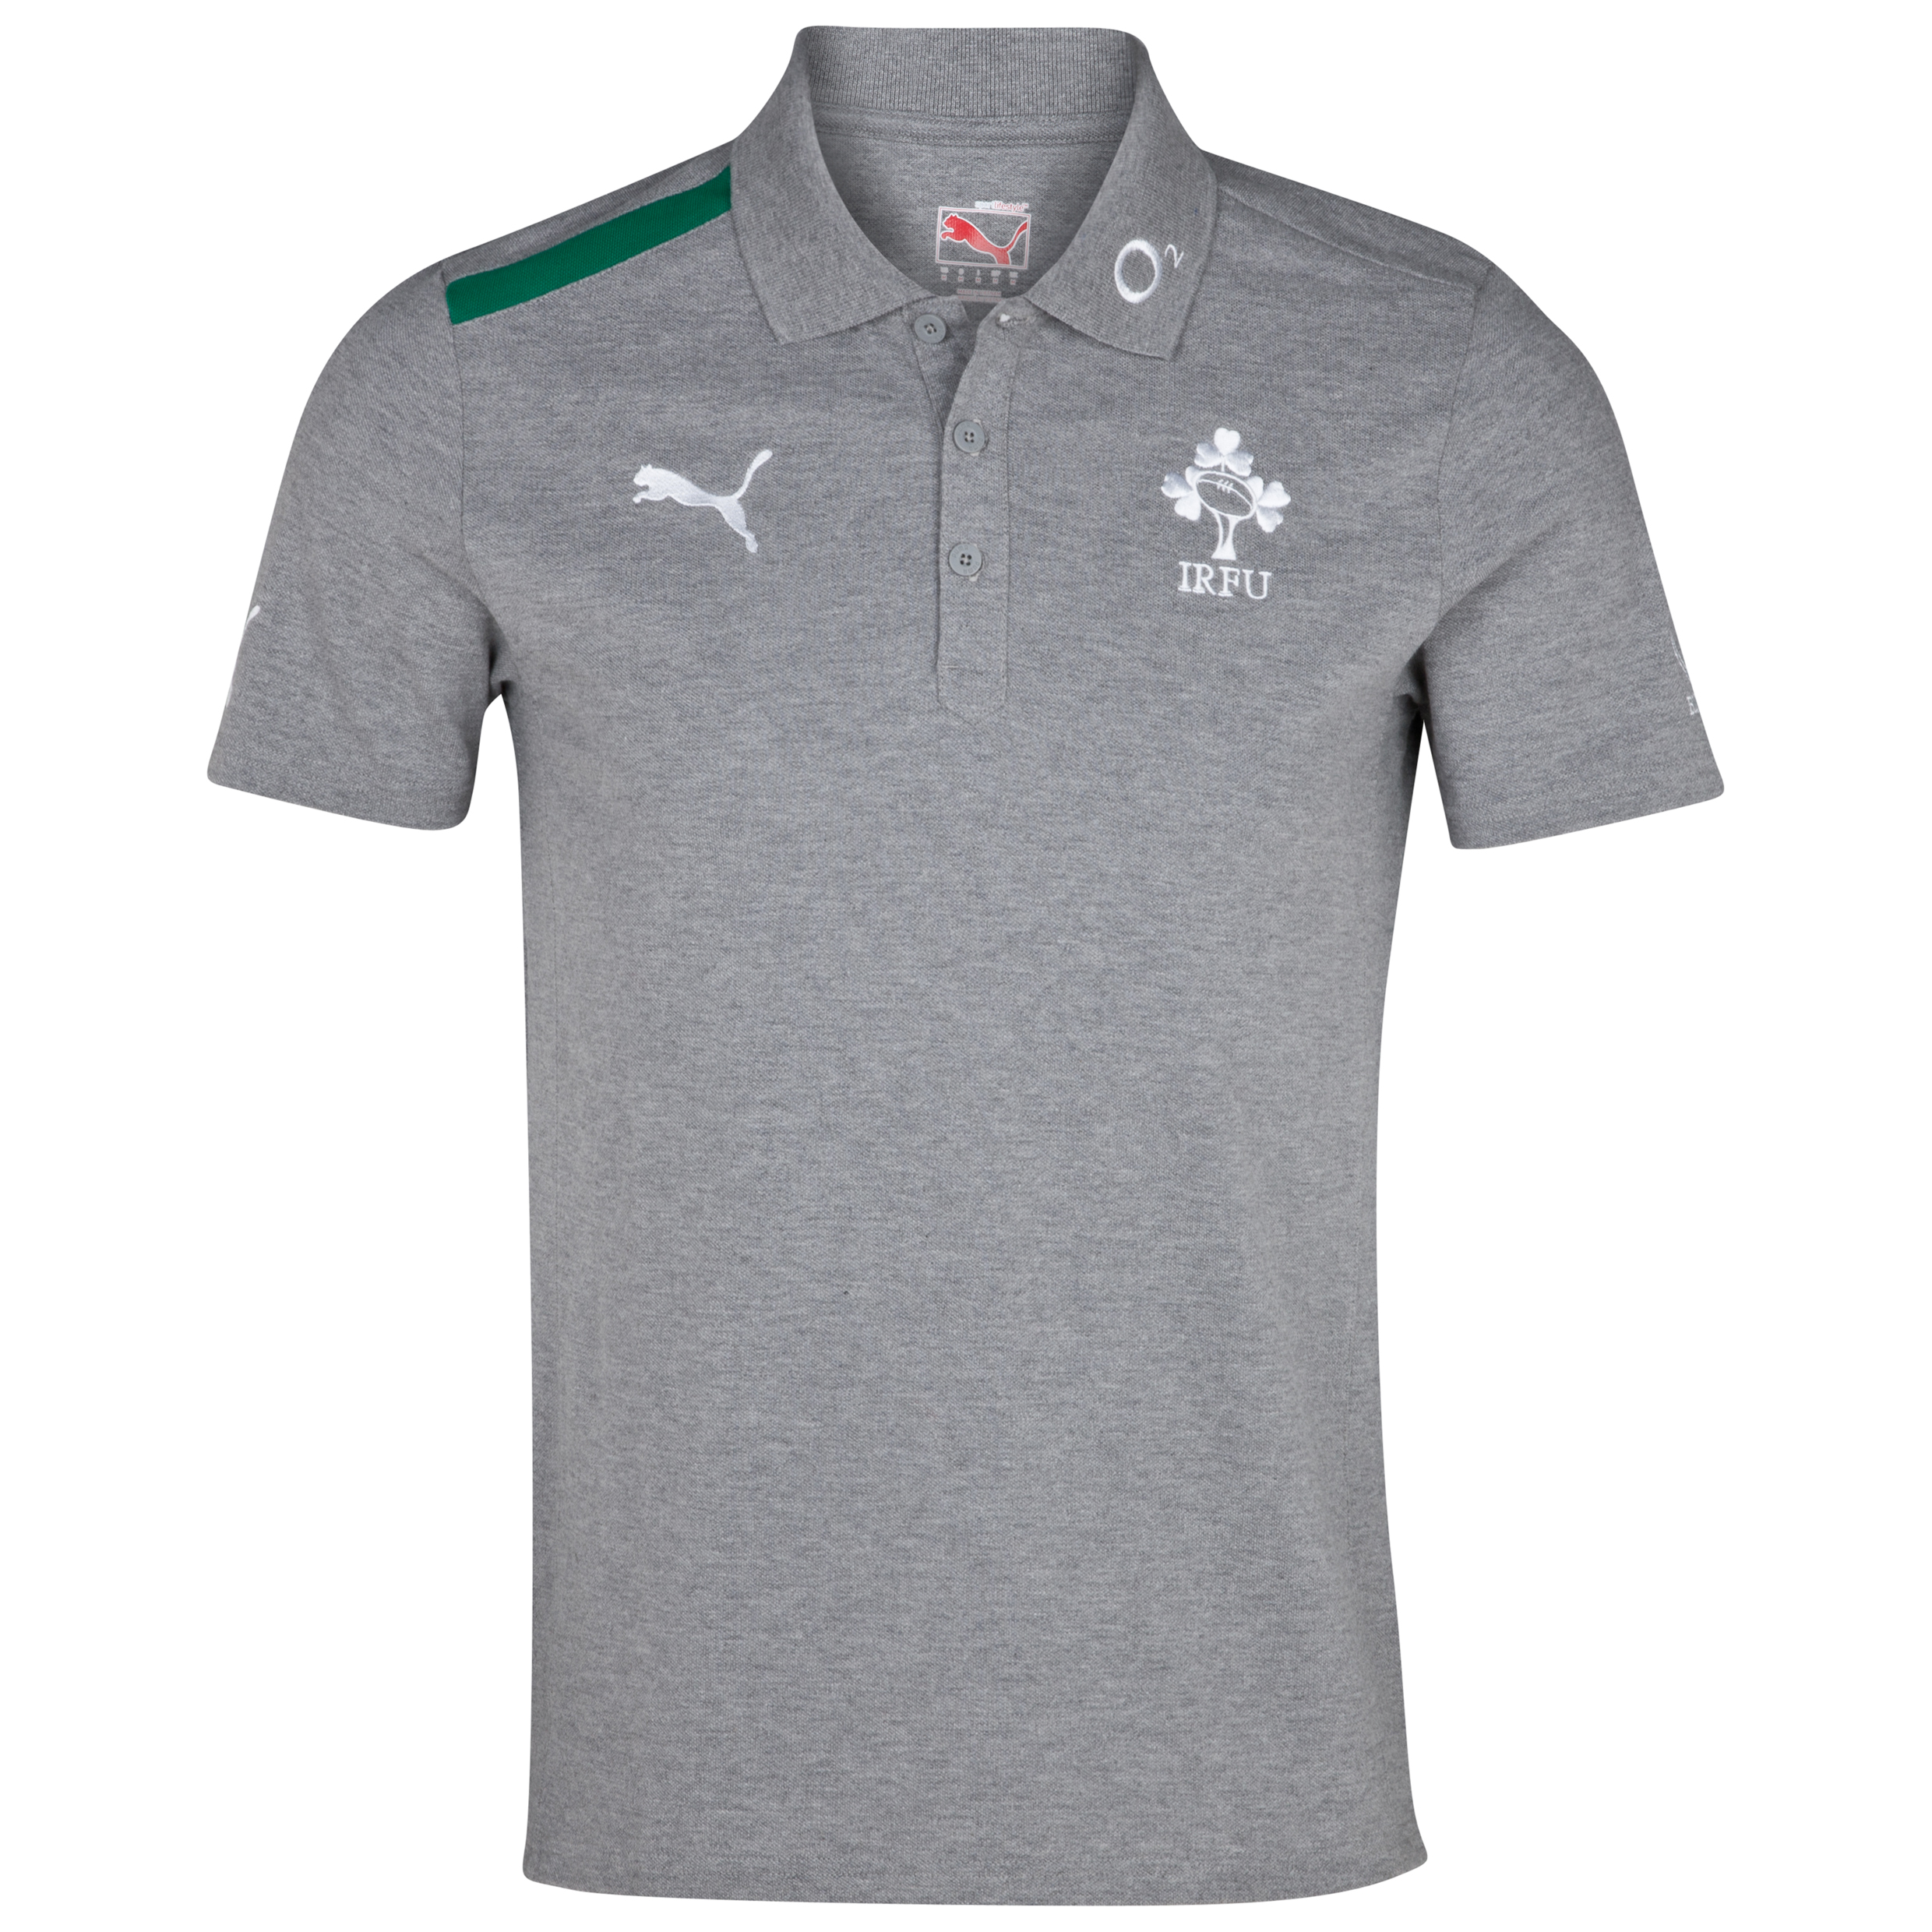 Ireland Rugby Polo - Athletic Heather/Power Green/White